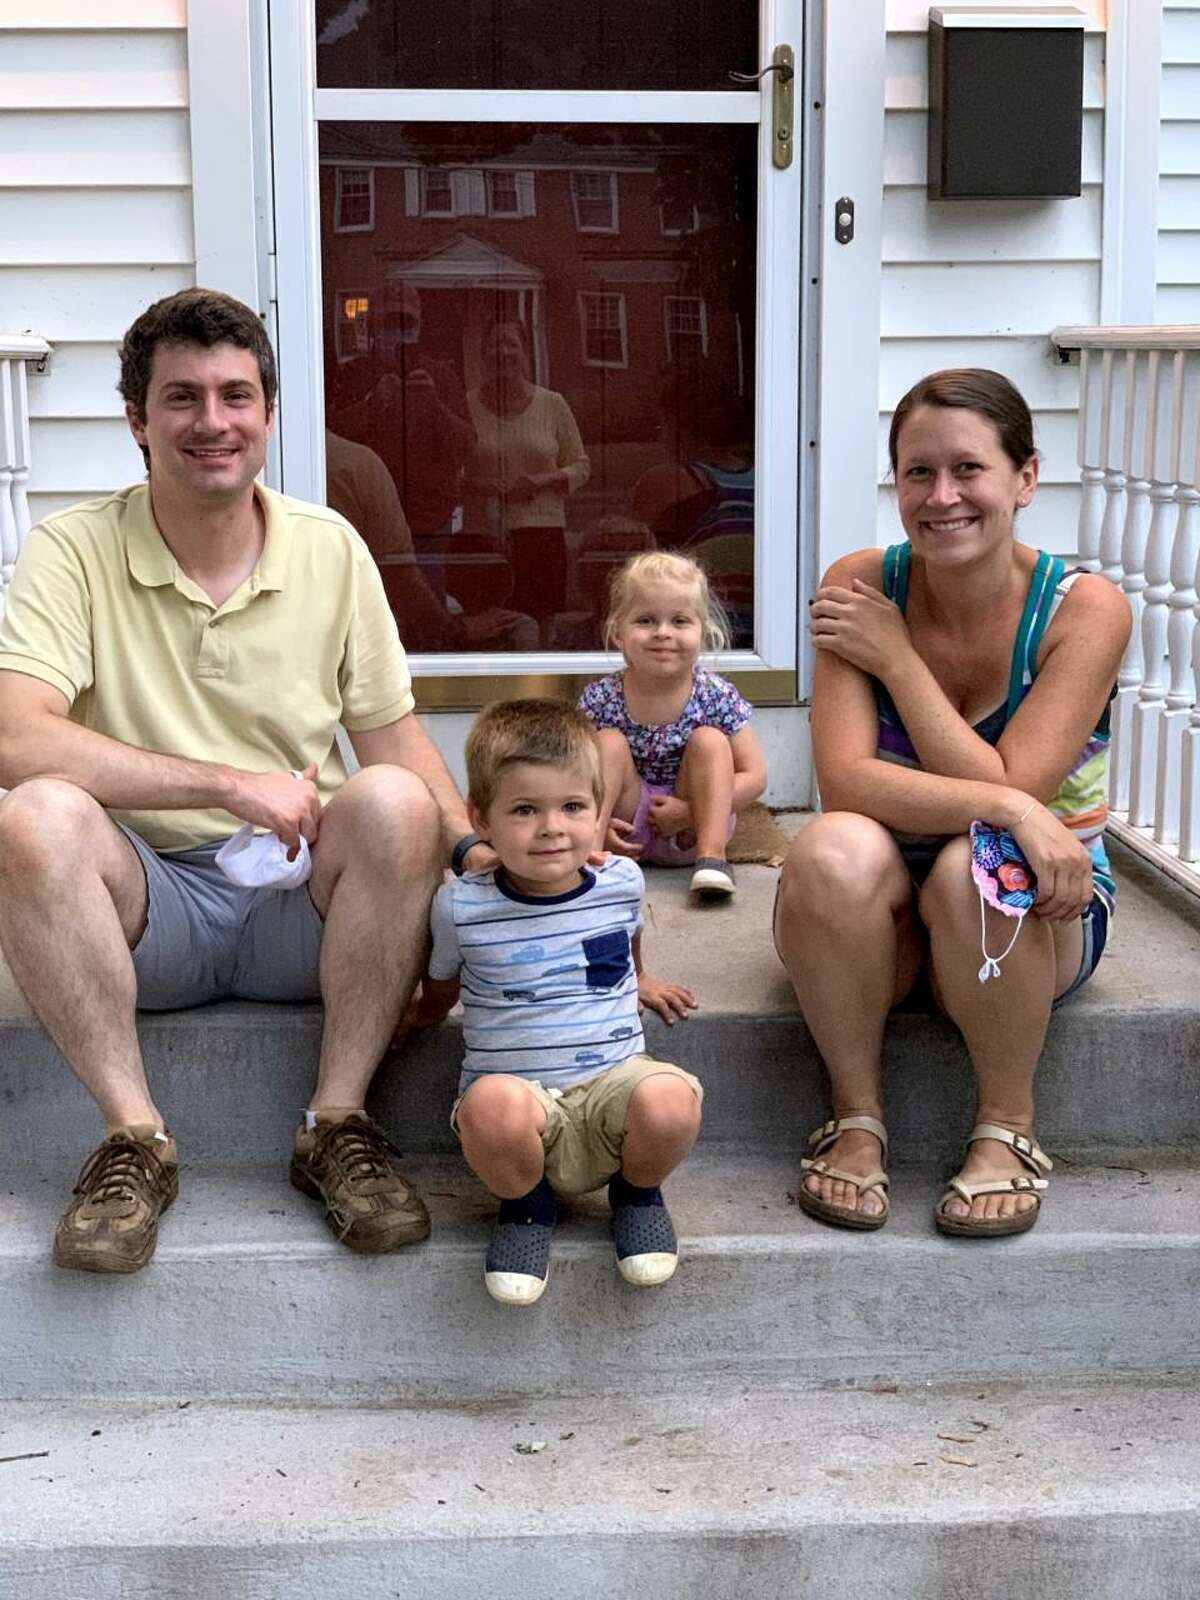 Jim and Emily Cornacchio of West Hartford, with their 3-year-old twins, Benjamin and Hailey.